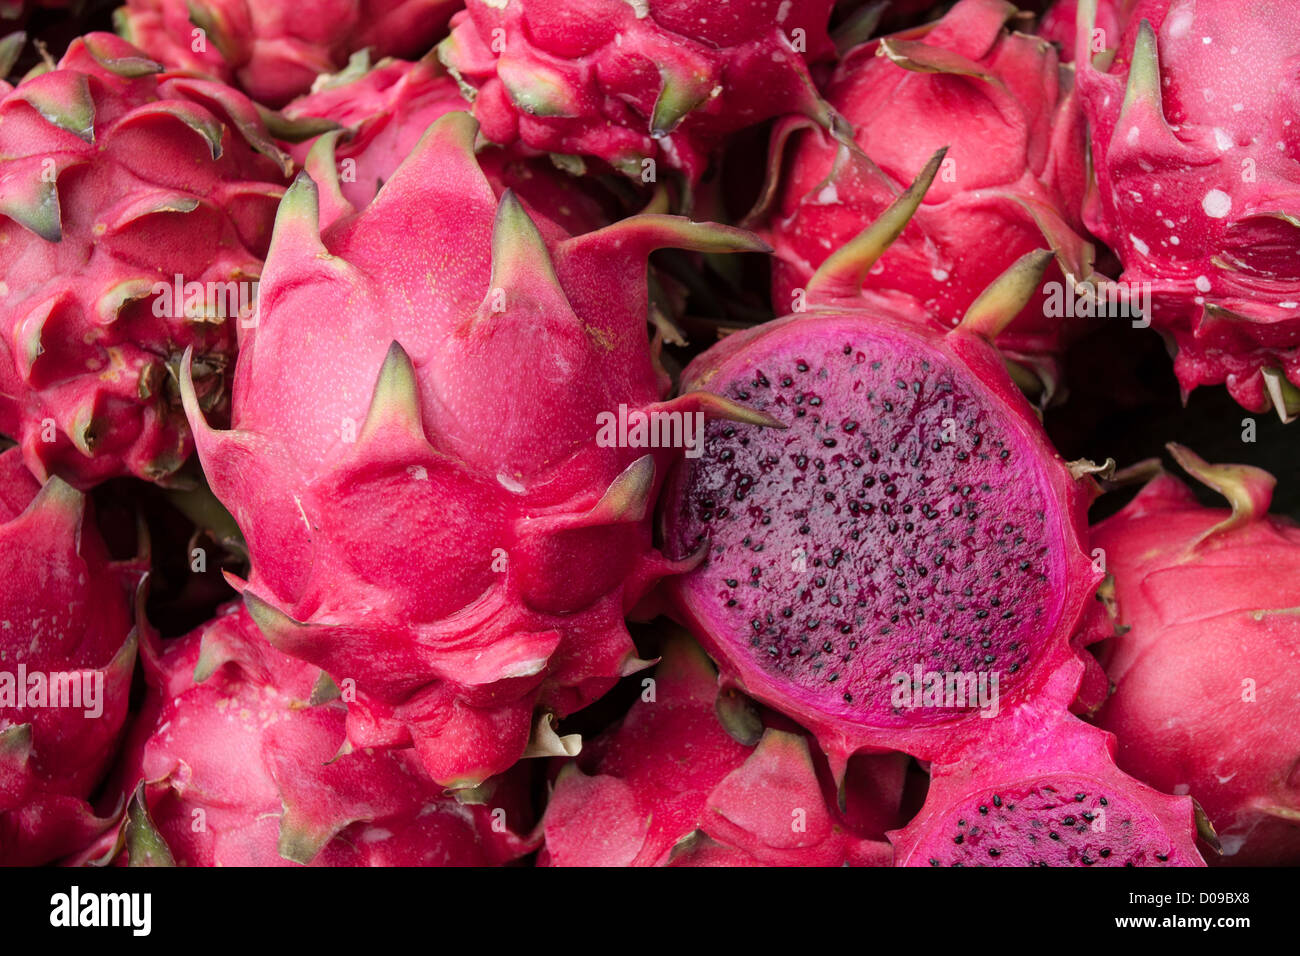 PITAYA ALSO CALLED DRAGON FRUIT ON A FRUIT SELLER'S STALL IN THE STREETS OF BANGKOK THAILAND ASIA - Stock Image